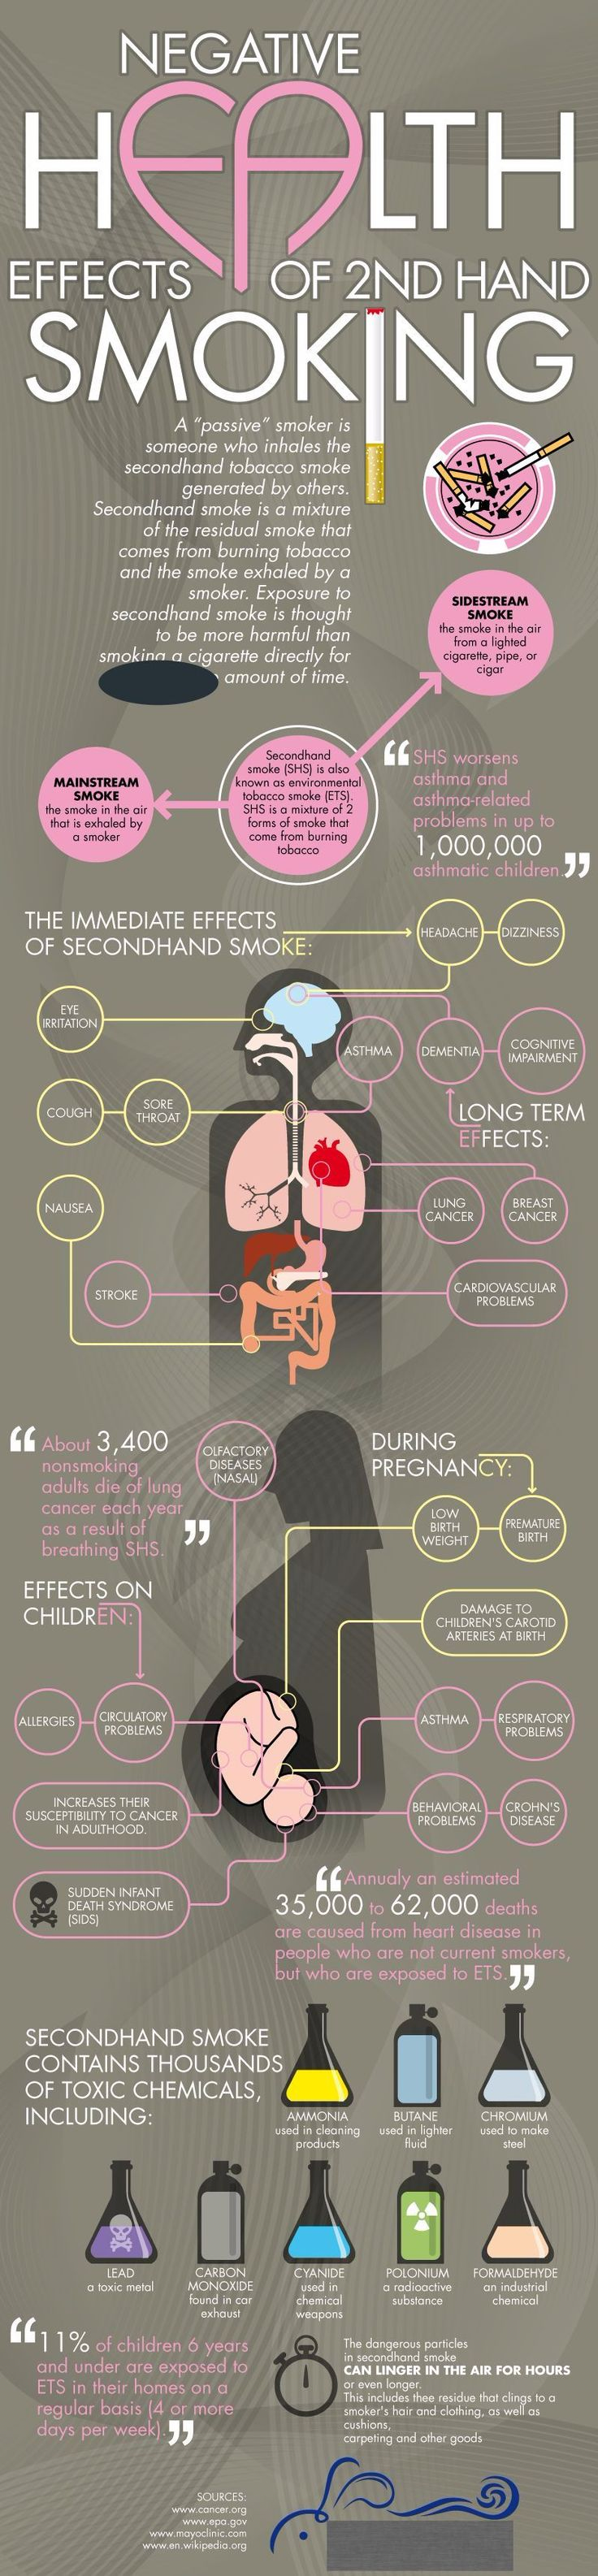 Lung #diseases caused by #smoking include COPD, which includes #emphysema and #chronic bronchitis. #Cigarette #smoking causes most cases of lung cancer. If you have asthma, tobacco smoke can trigger an attack or make an attack worse. Smokers are 12 to 13 times more likely to die from COPD than nonsmokers.